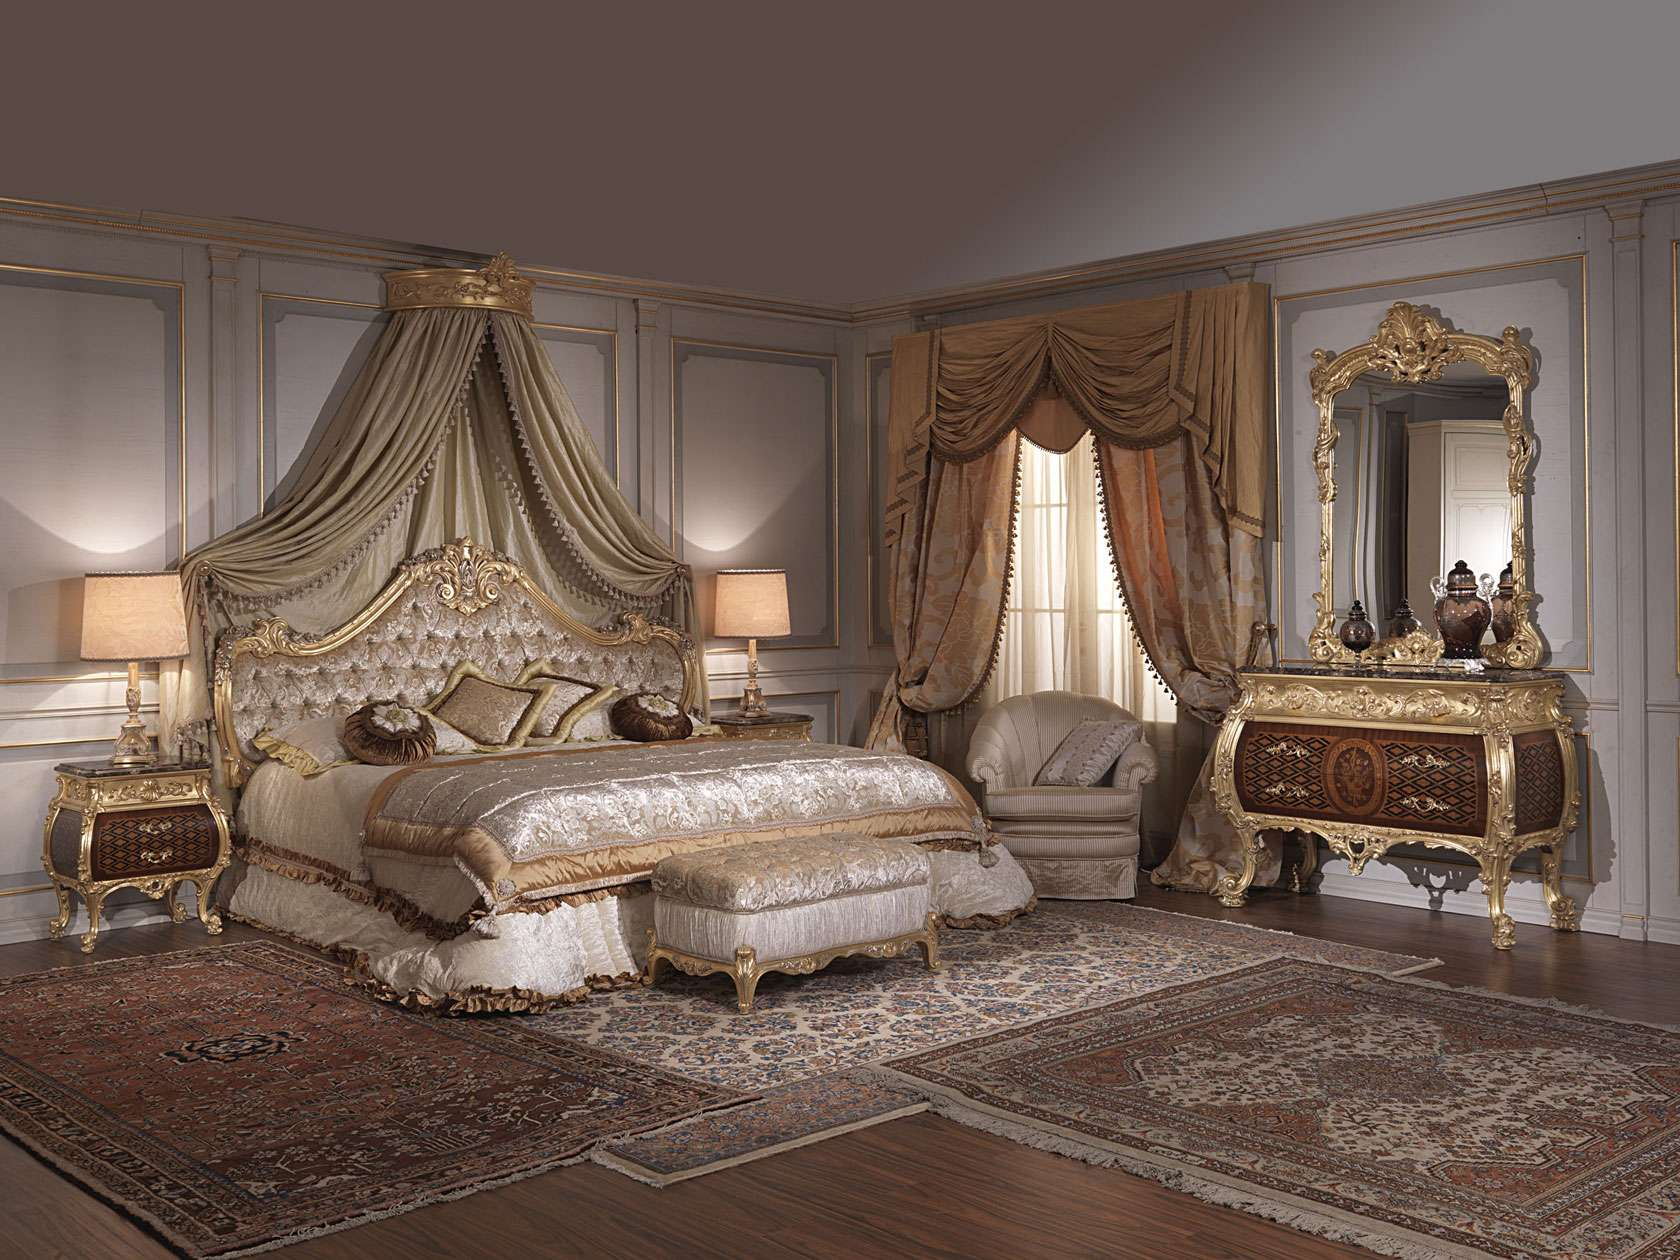 Classic italian bedroom 18th century and Louis XV | Vimercati ...